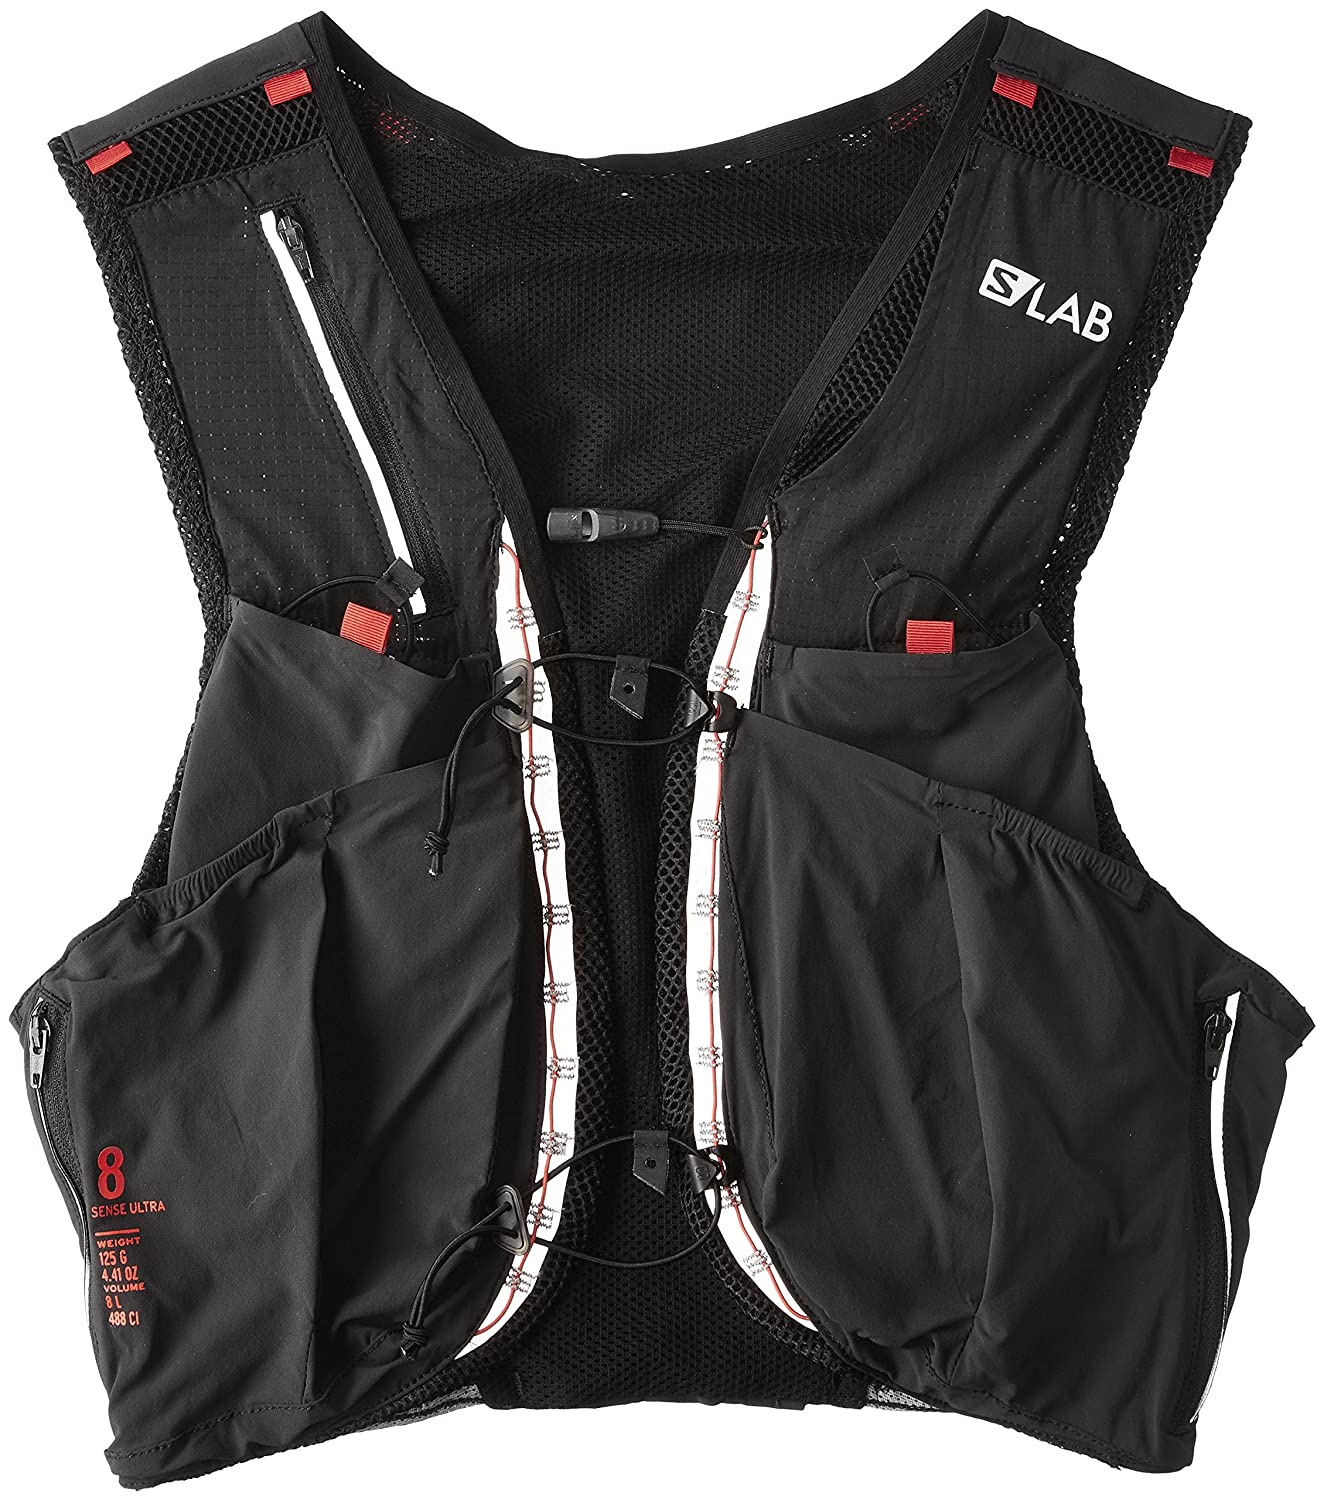 Unisex S-Lab Sense Ultra 8 Set Salomon S-Lab Sense Ultra 8 Hydration Vest